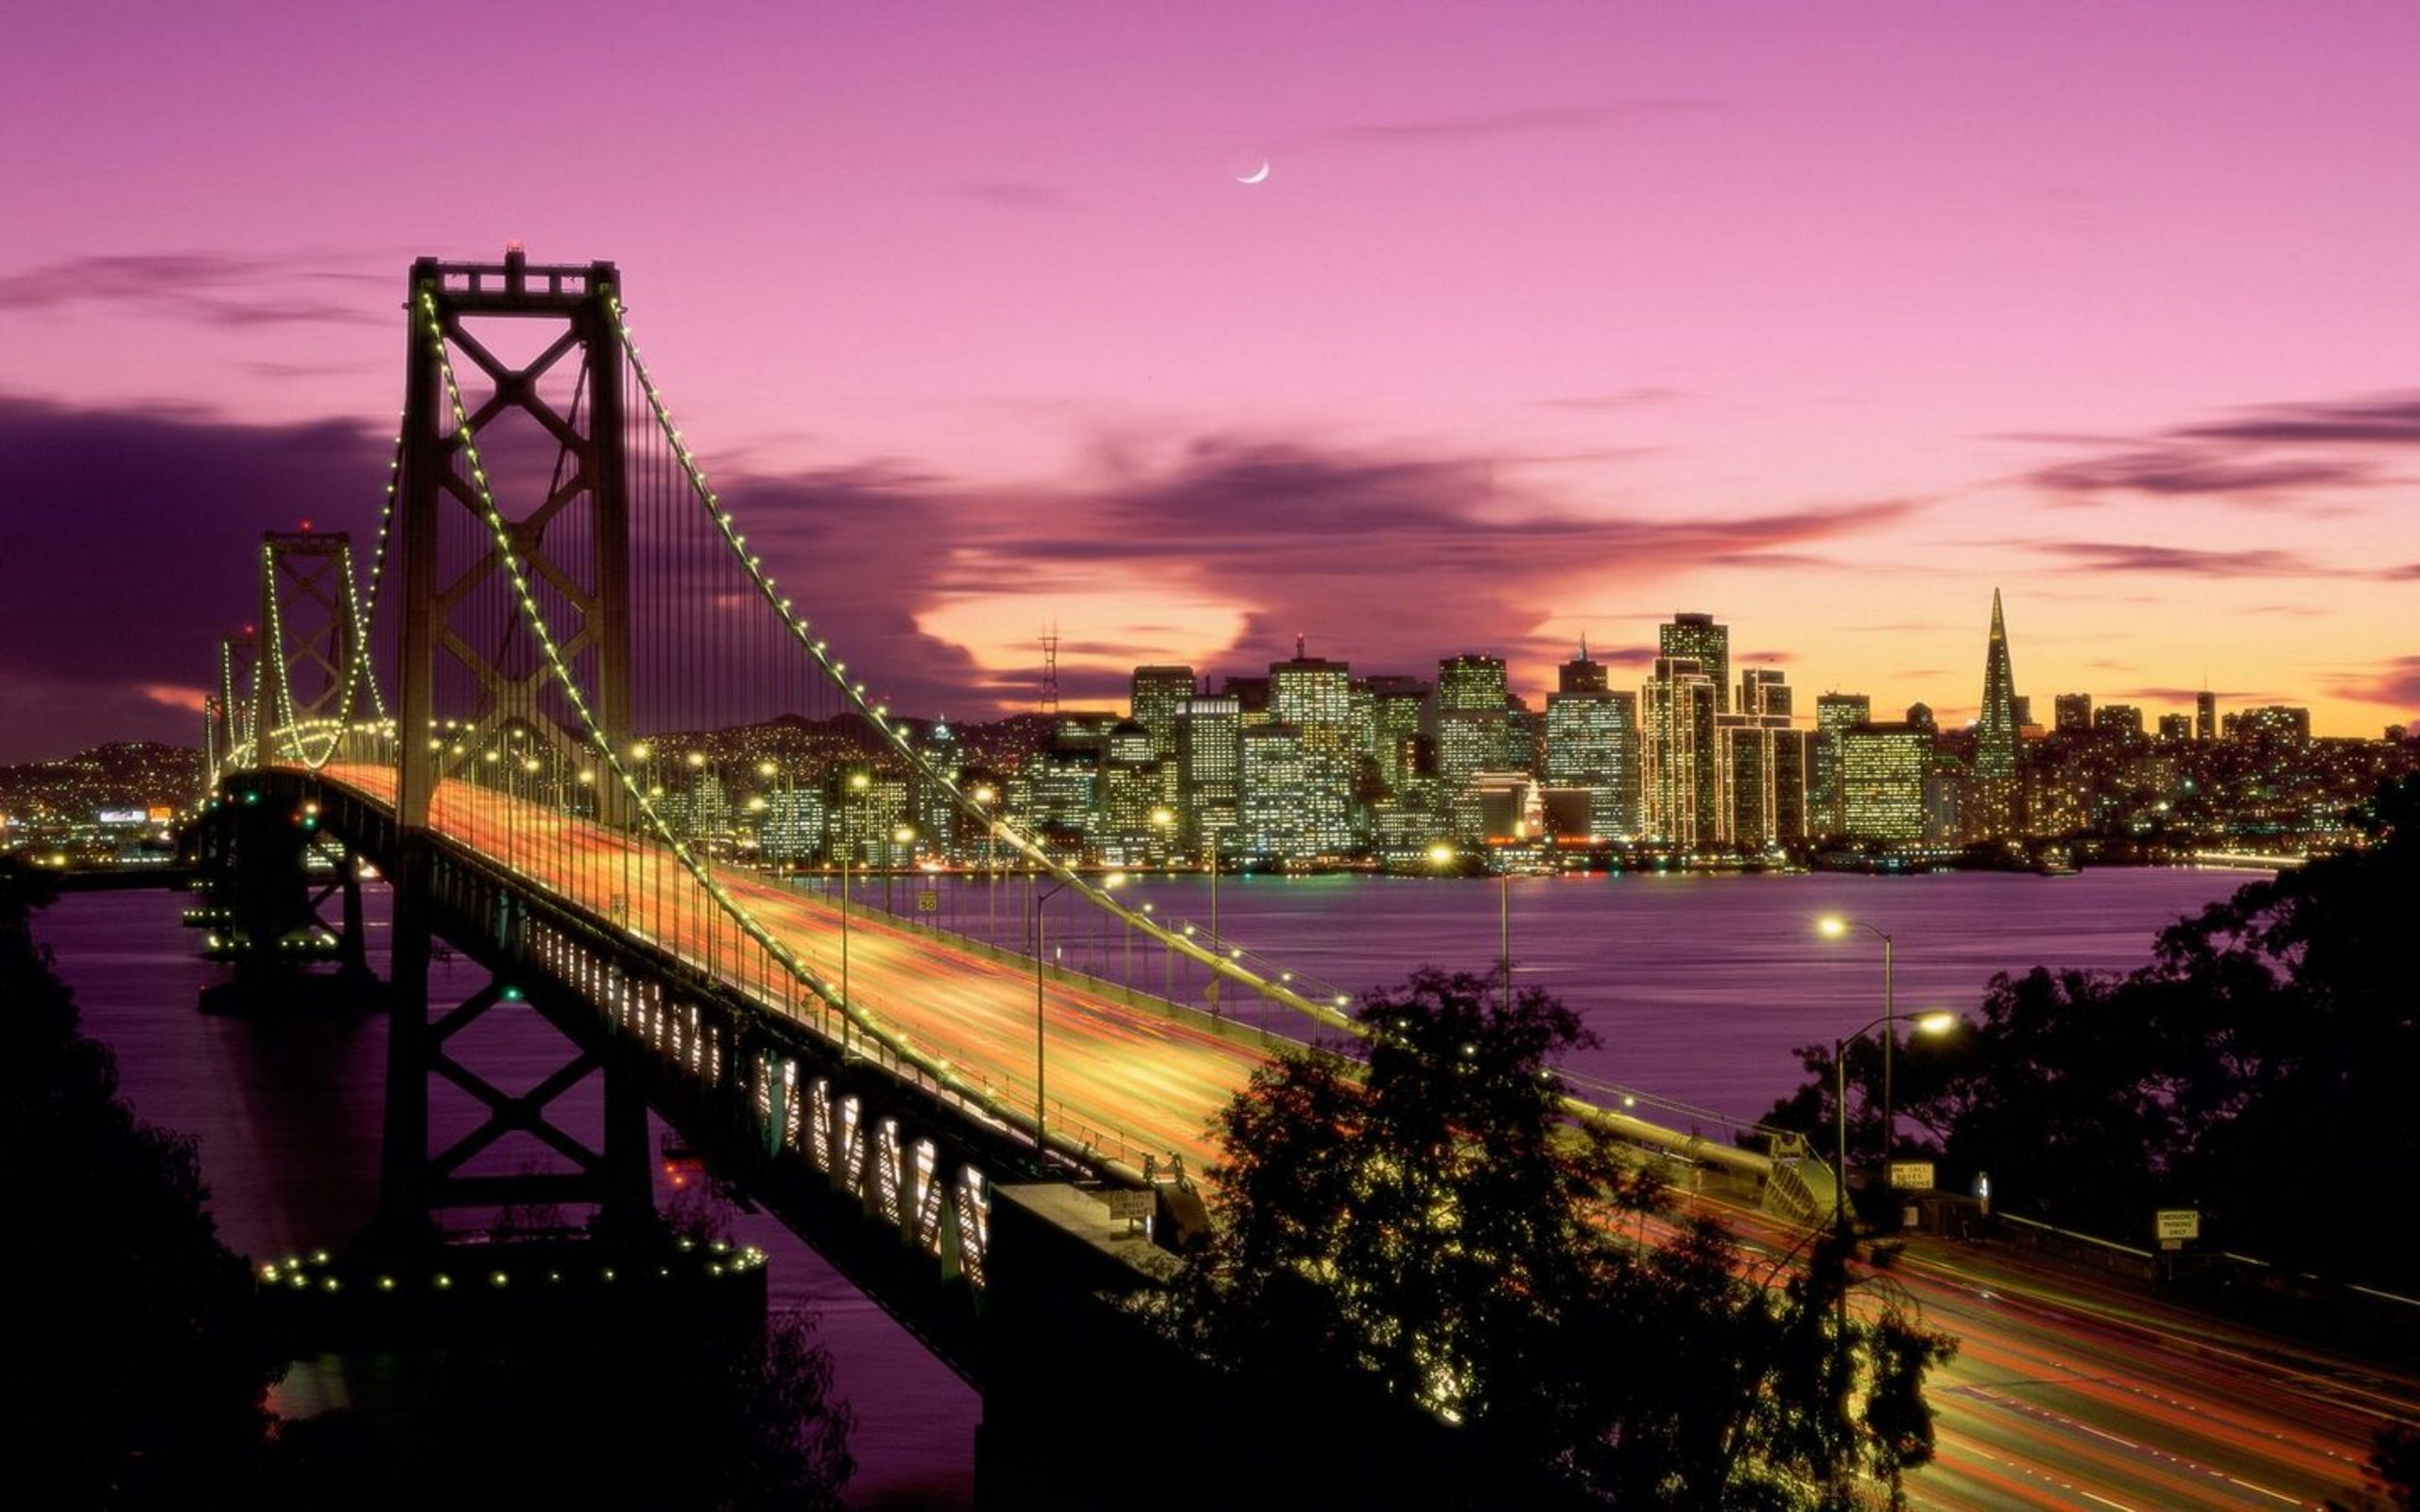 click to free download the wallpaper--Beautiful Sceneries of the World - San Francisco Bridge California, Bridge in All Lights, Tall Buildings Under the Purple Sky, Romantic Scene 2560X1600 free wallpaper download